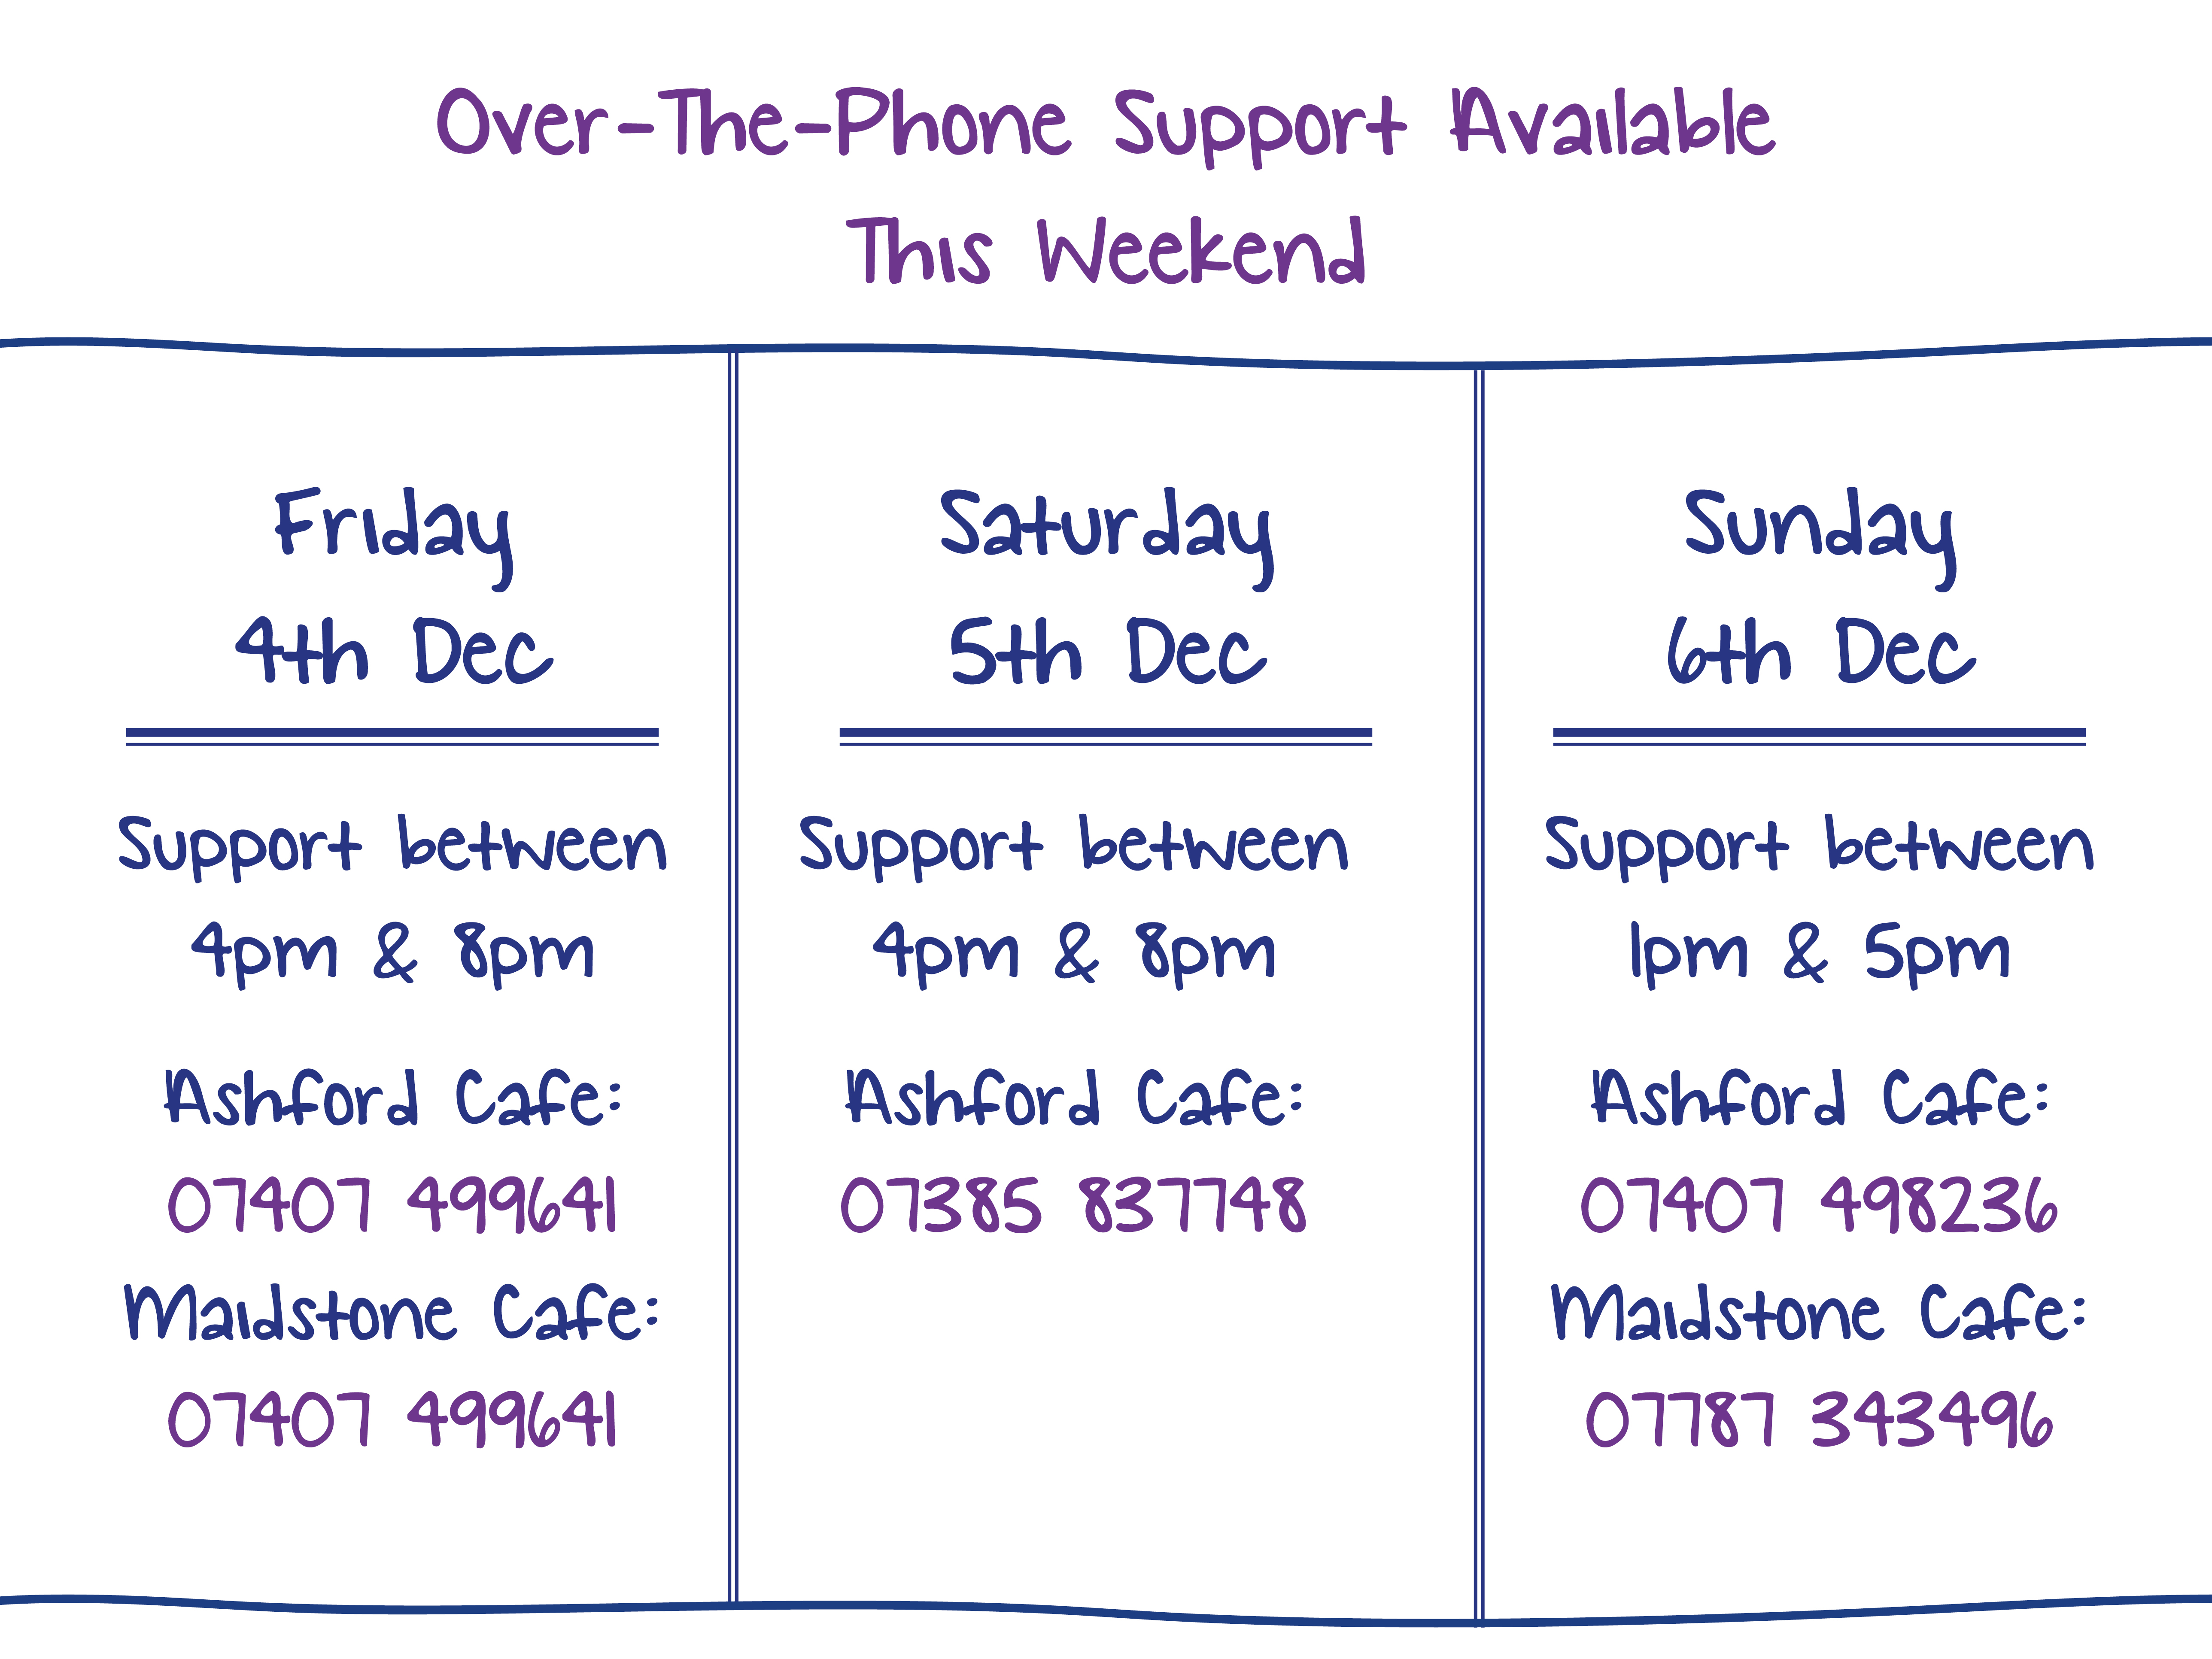 Over-The-Phone Support Available This Weekend. Friday 4th Dec. Support between 4pm & 8pm Ashford Cafe: 07407 499641 Maidstone Cafe: 07407 499641. Saturday 5th Dec. Support between 4pm & 8pm Ashford Cafe: 07385 837748. Sunday 6th Dec. Support between 1pm & 5pm Ashford Cafe: 07407 498236 Maidstone Cafe: 07787 343496